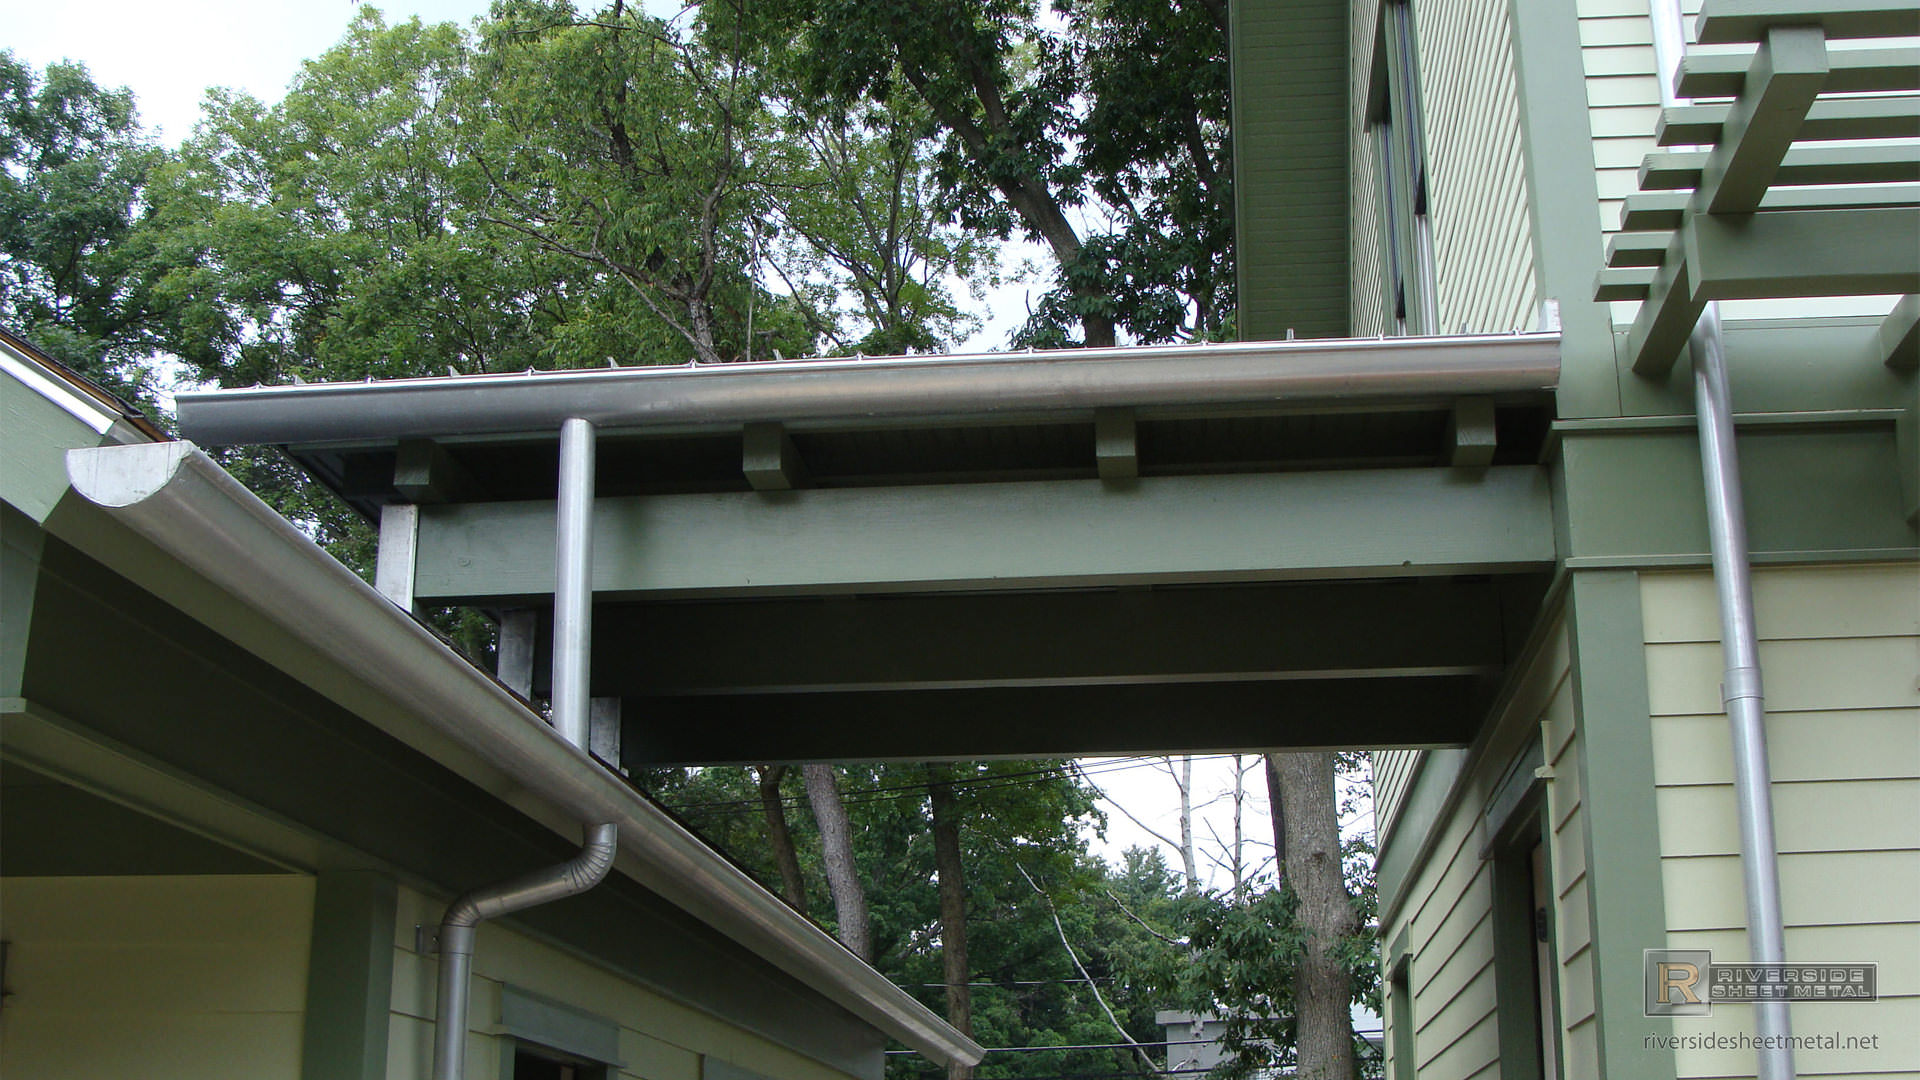 5 Quot Single Bead Tcsii Half Round Gutter Ma